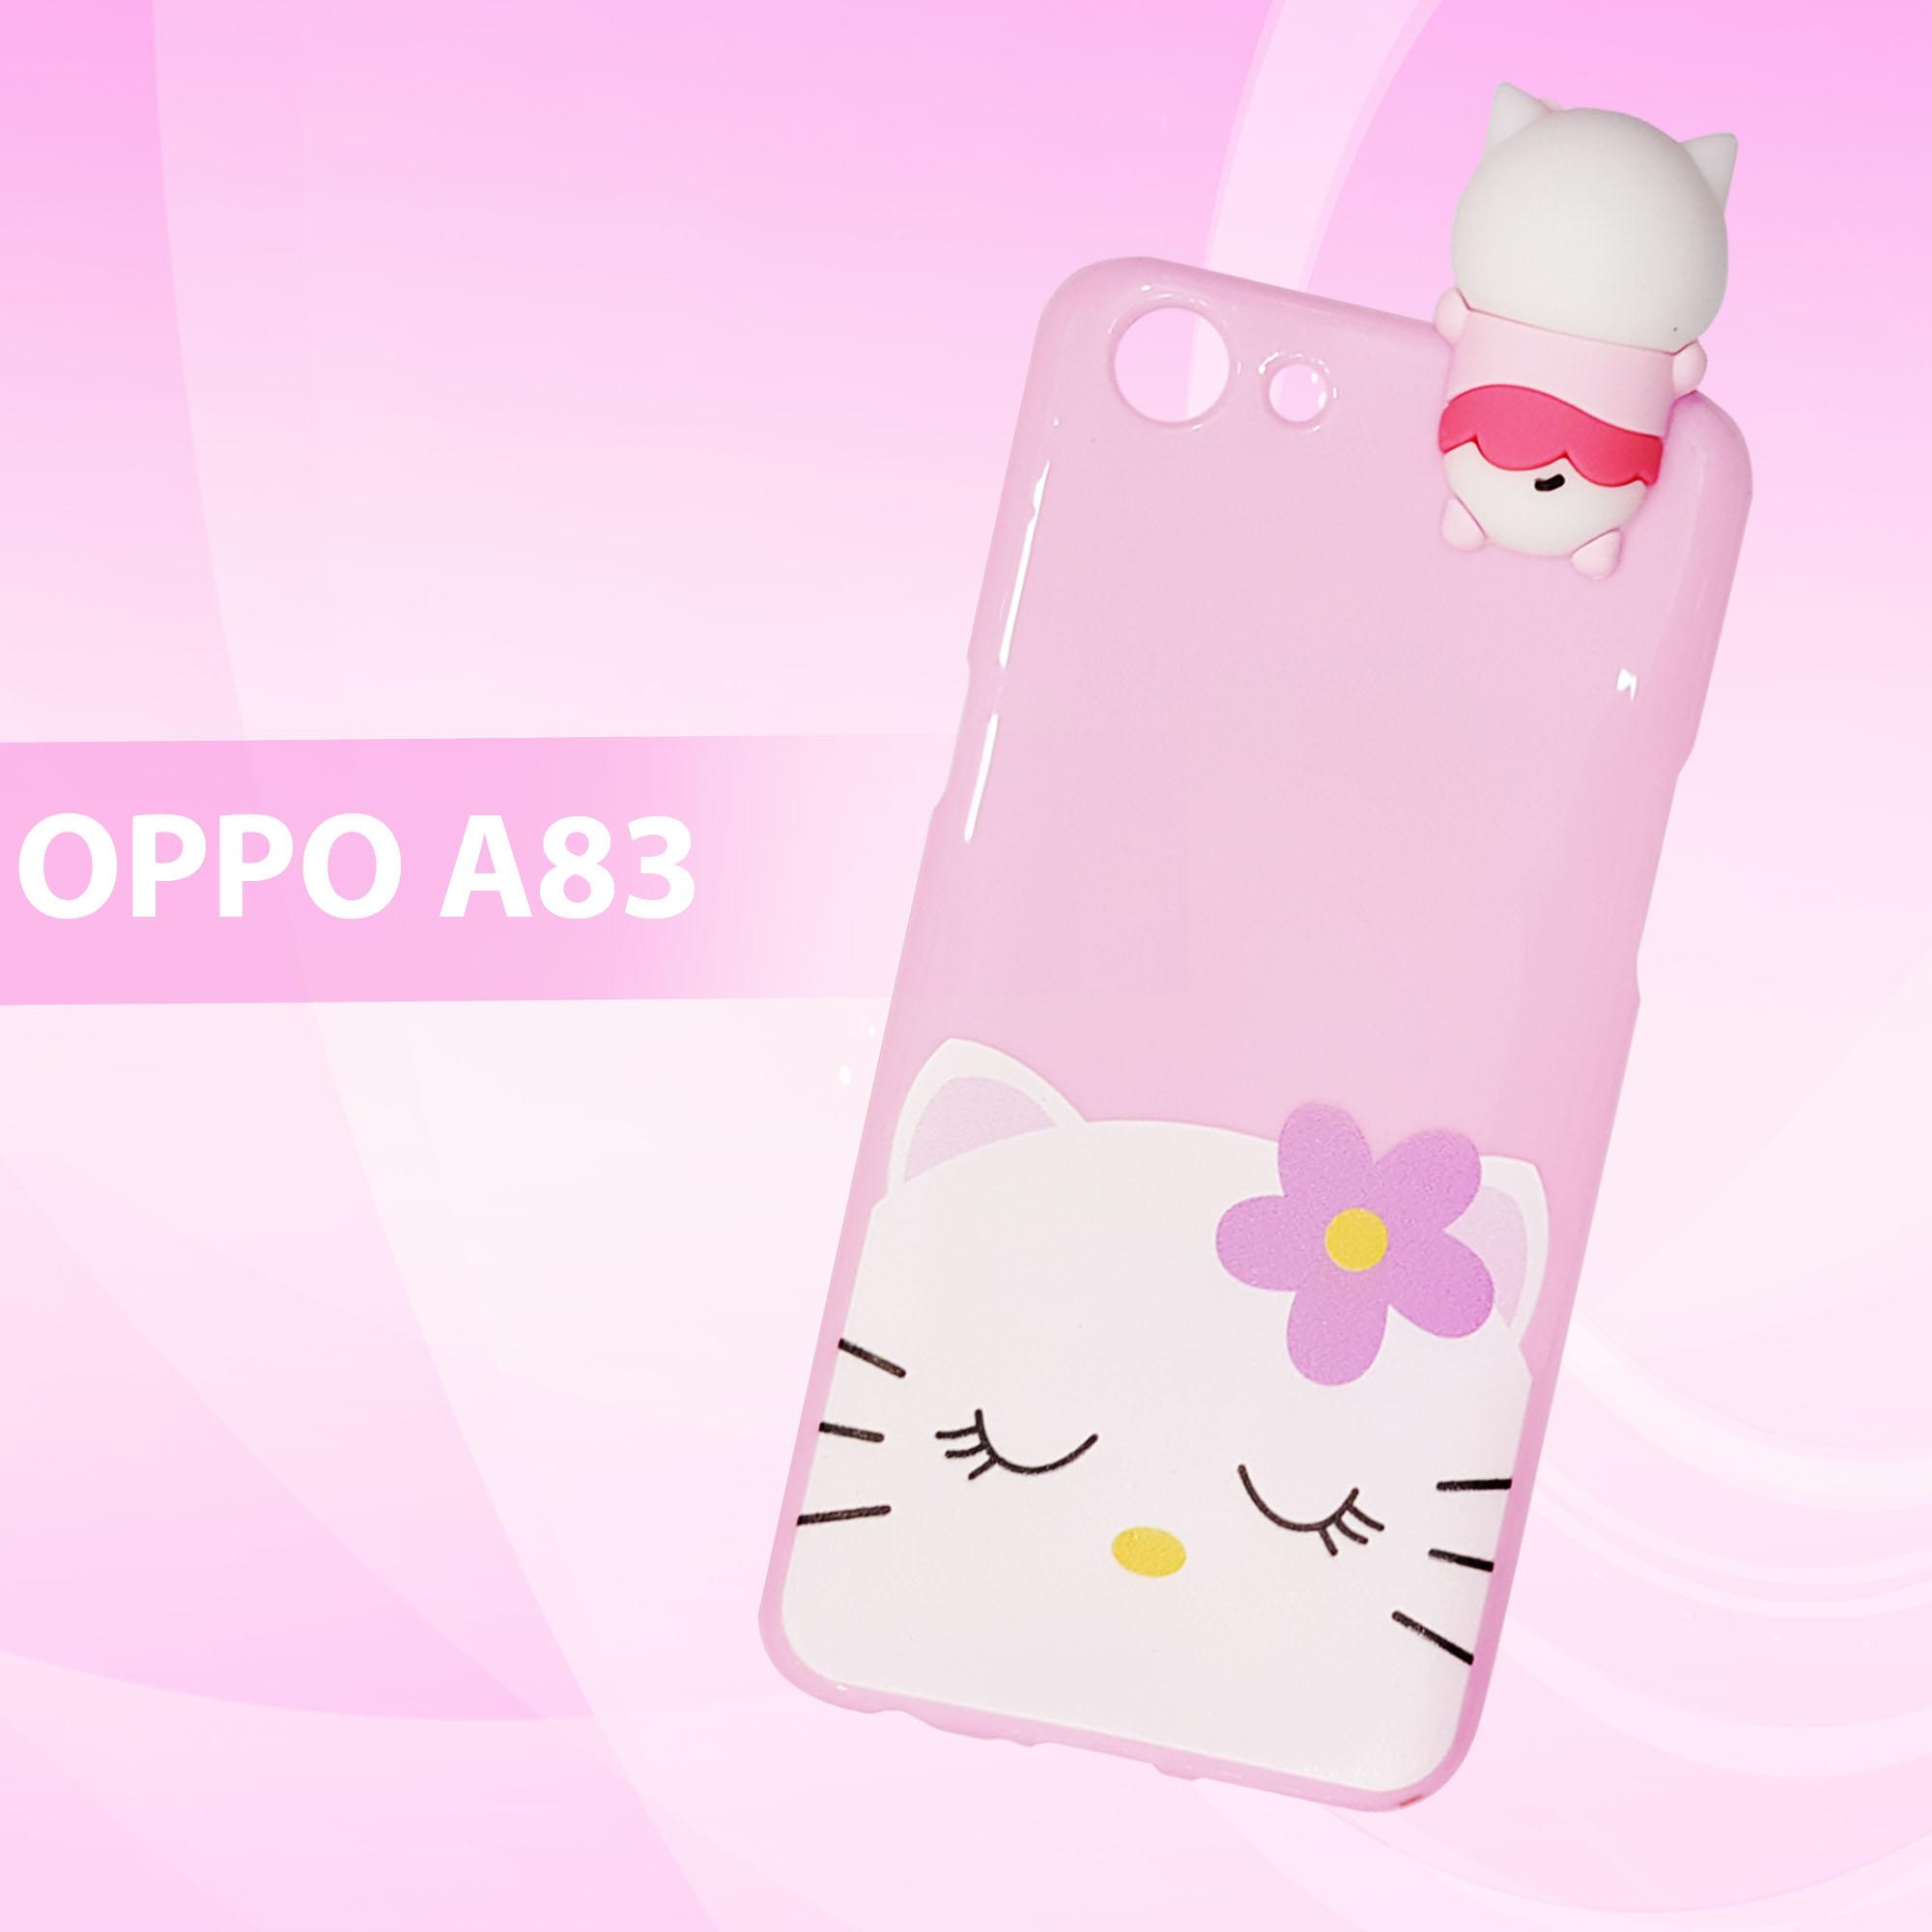 Marintri Case Oppo A83 New Pinky Manjat